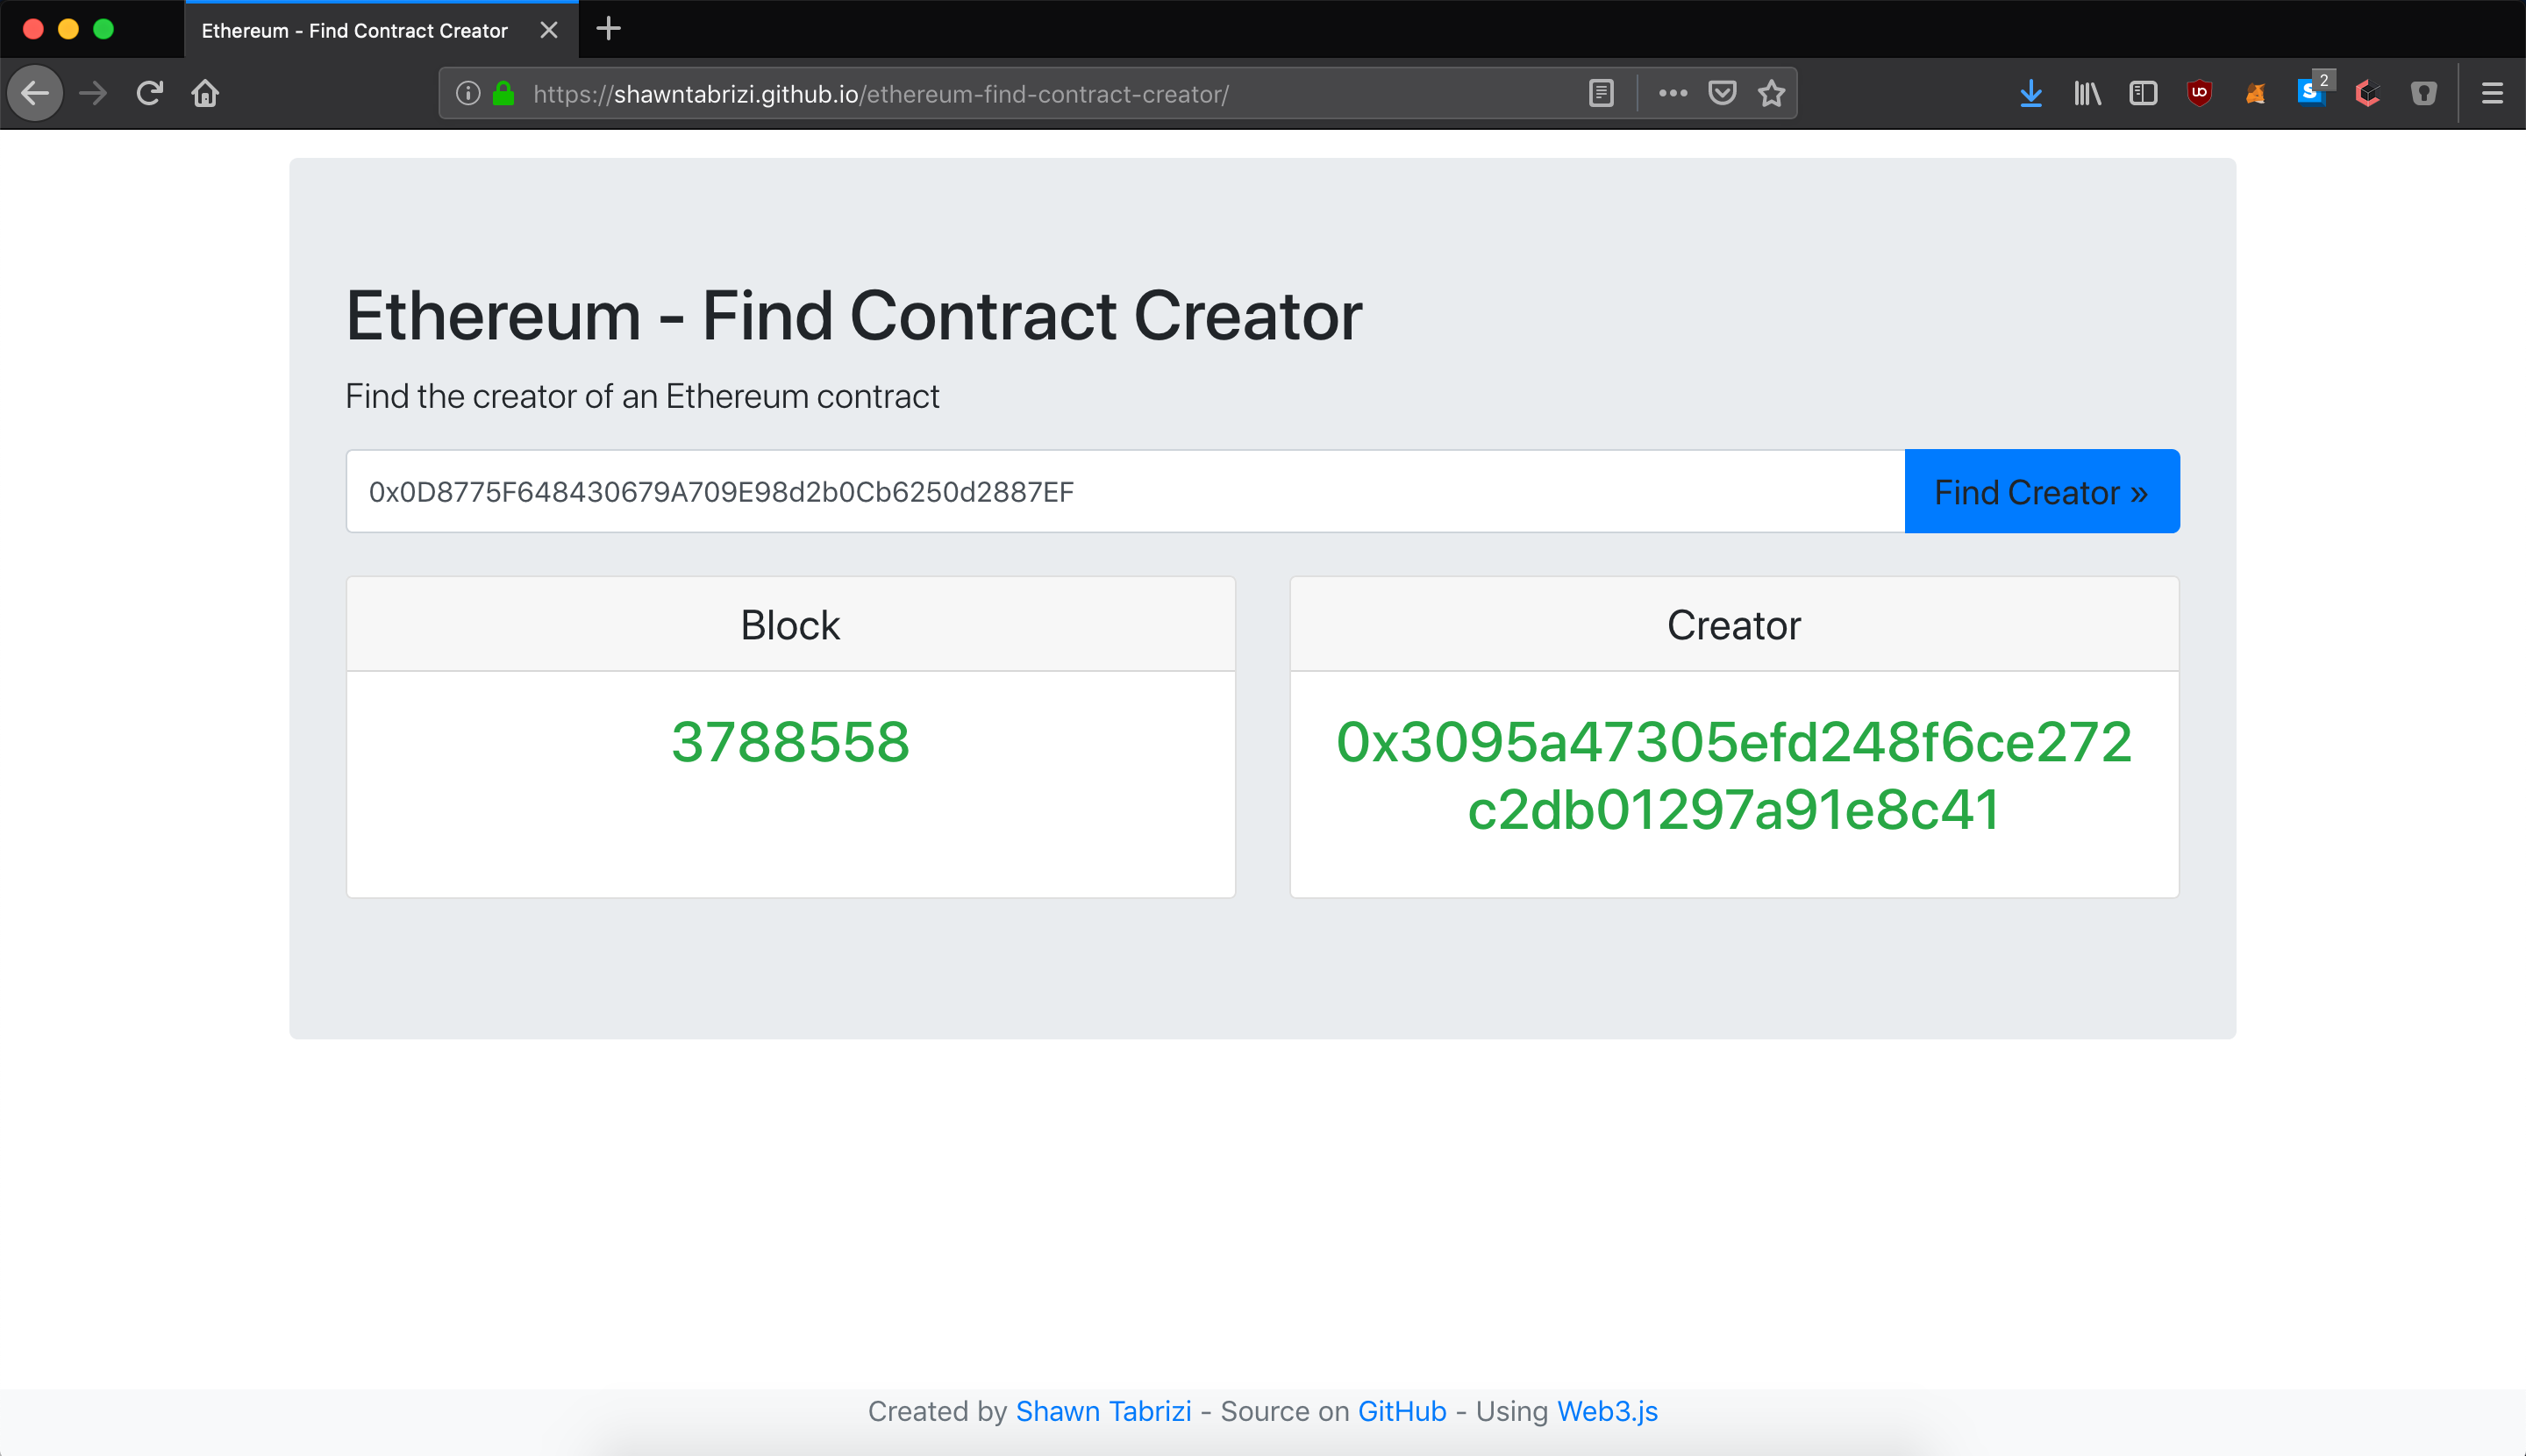 ethereum-find-contract-creator Screenshot